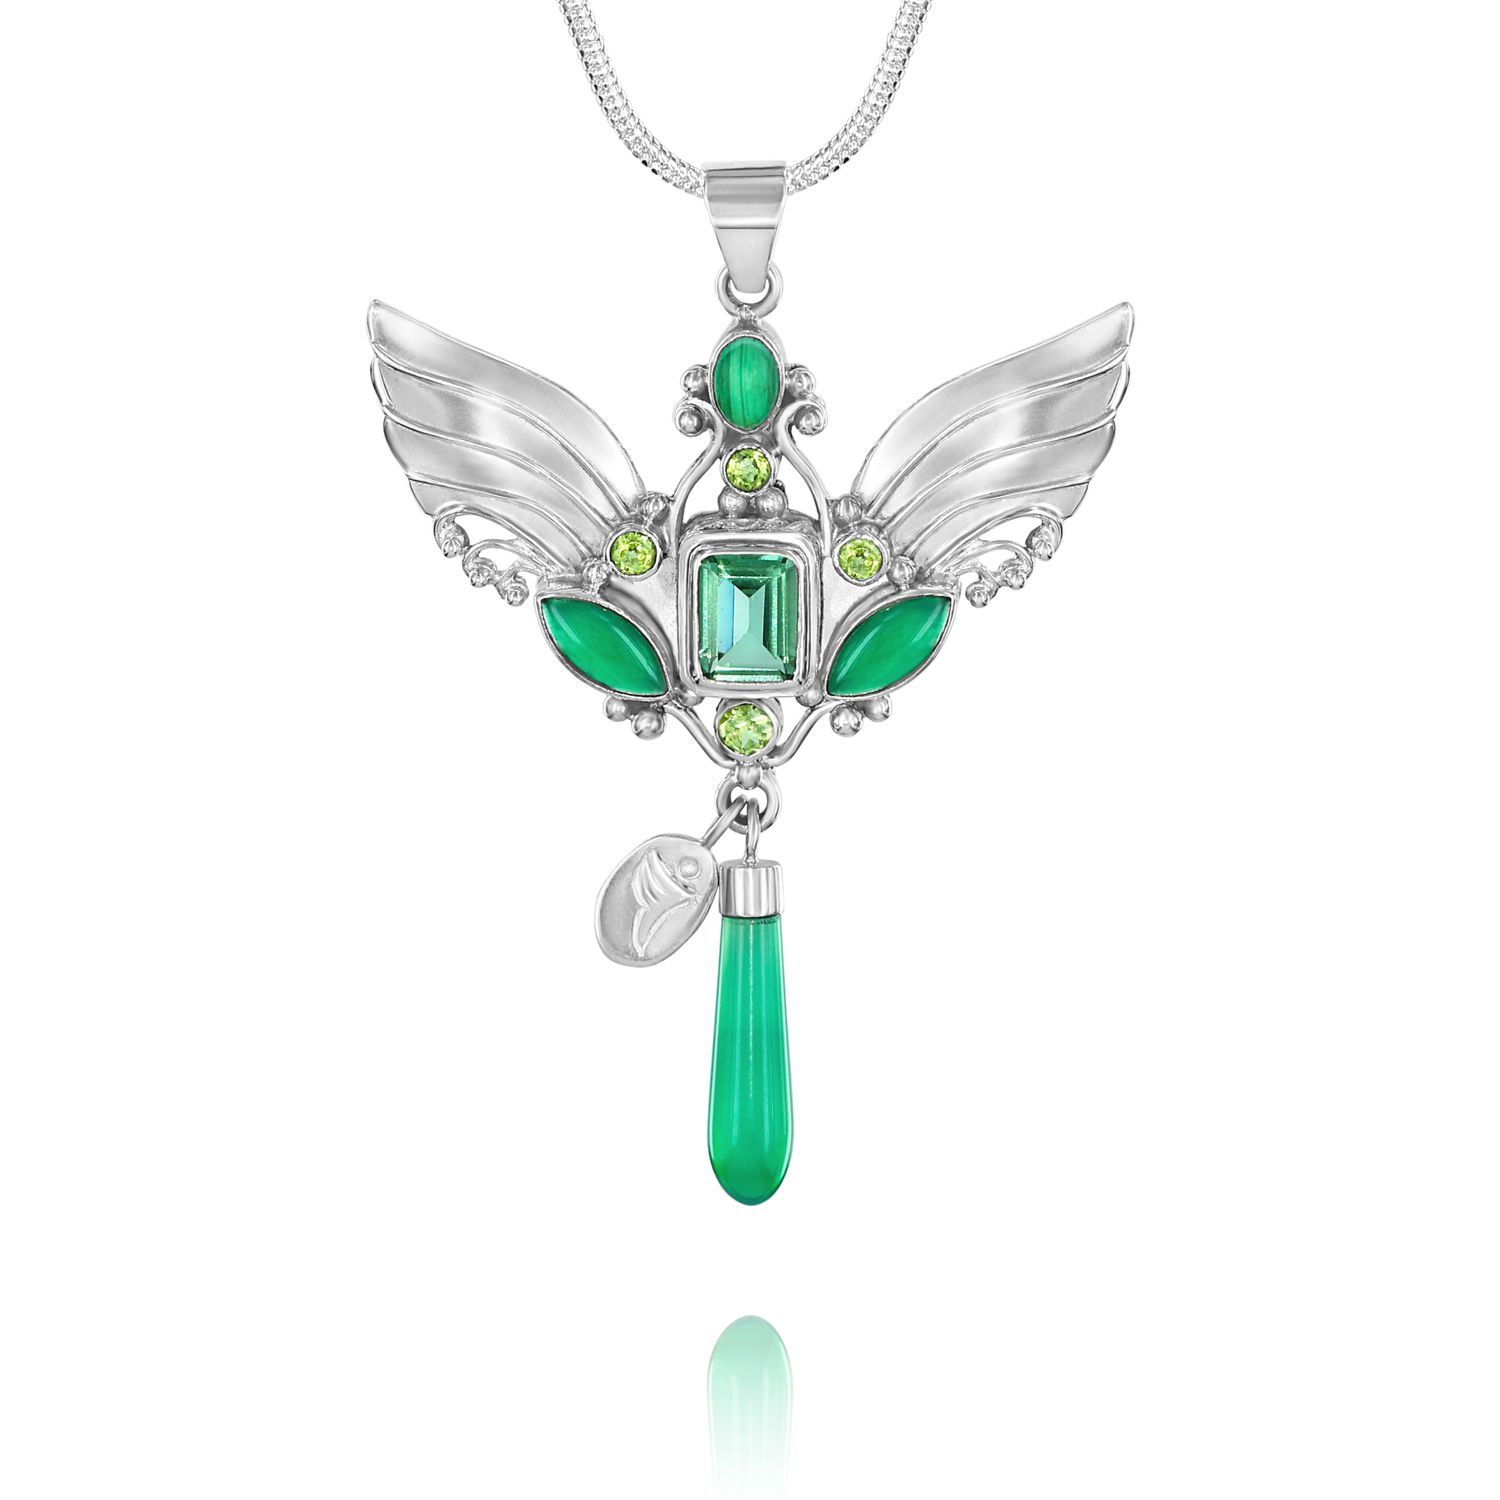 Sterling silver angel wings necklace with 7 healing gemstones of archangel raphael the healer with 5 glorious healing gemstones ambassador for the healing arts supporting healing on all levels buycottarizona Images